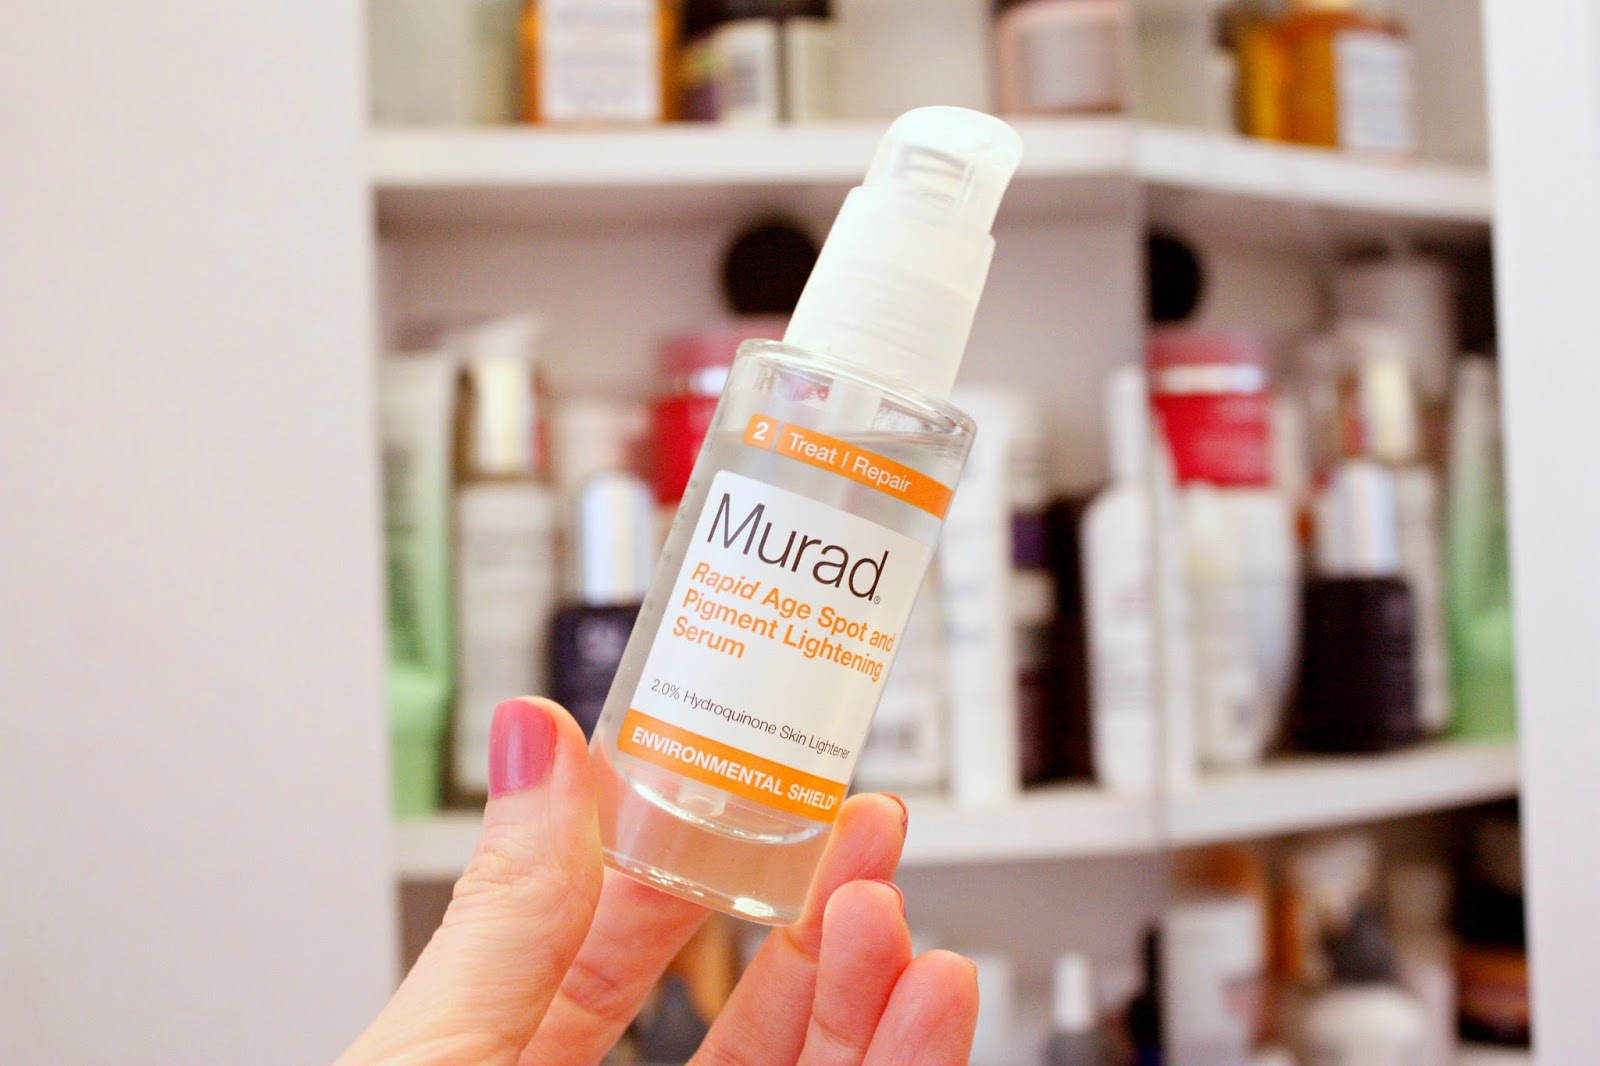 Murad Age Spot and Pigment Lightening Serum review